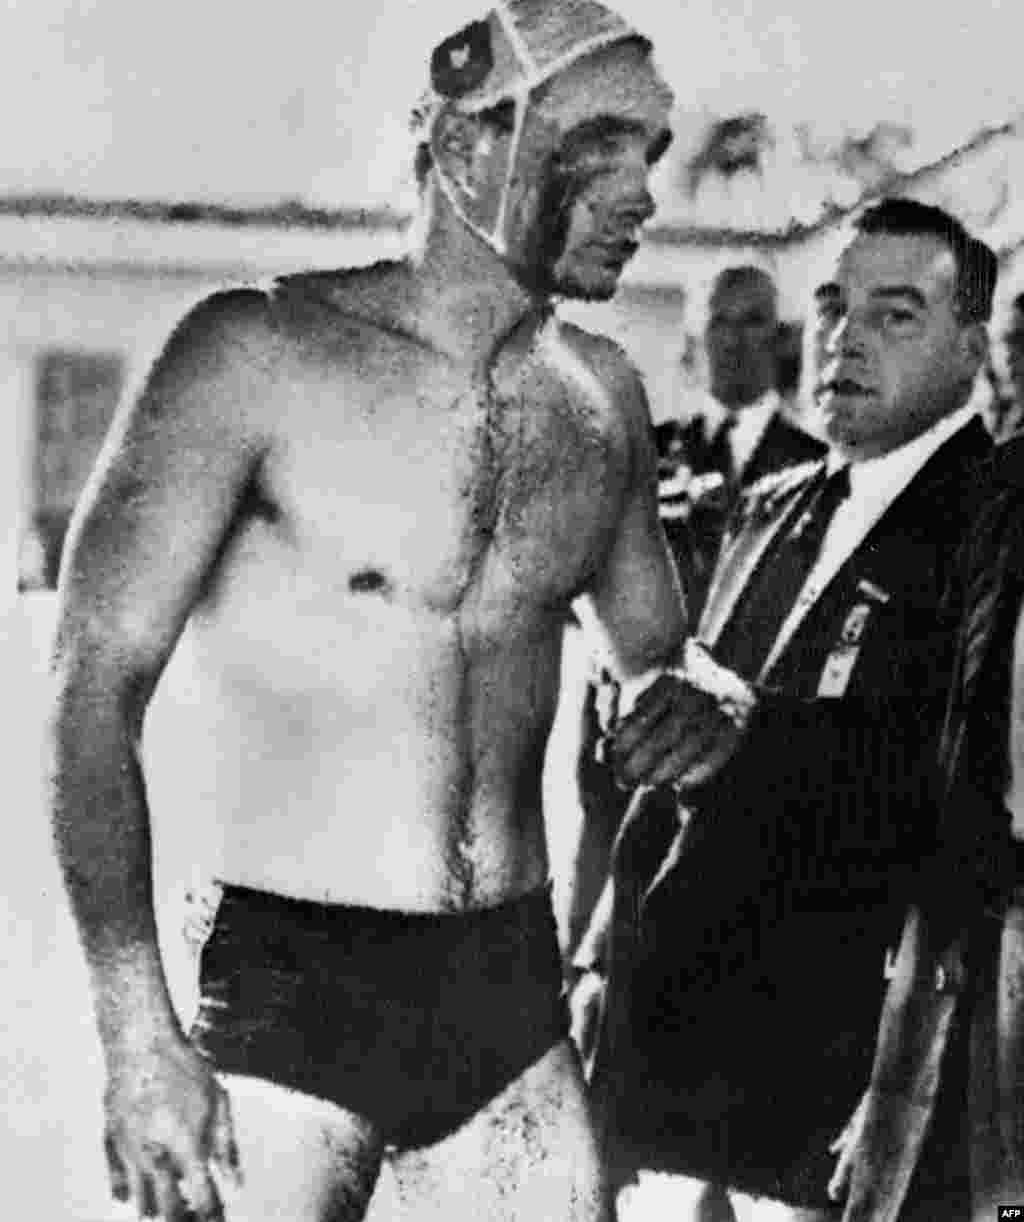 Hungarian water-polo player Ervin Zador after the infamous semifinal against the U.S.S.R. at the Melbourne Olympics in 1956 (just after the Soviet invasion of Hungary). The Hungarians won the bad-tempered match and went on to clinch the gold medal.